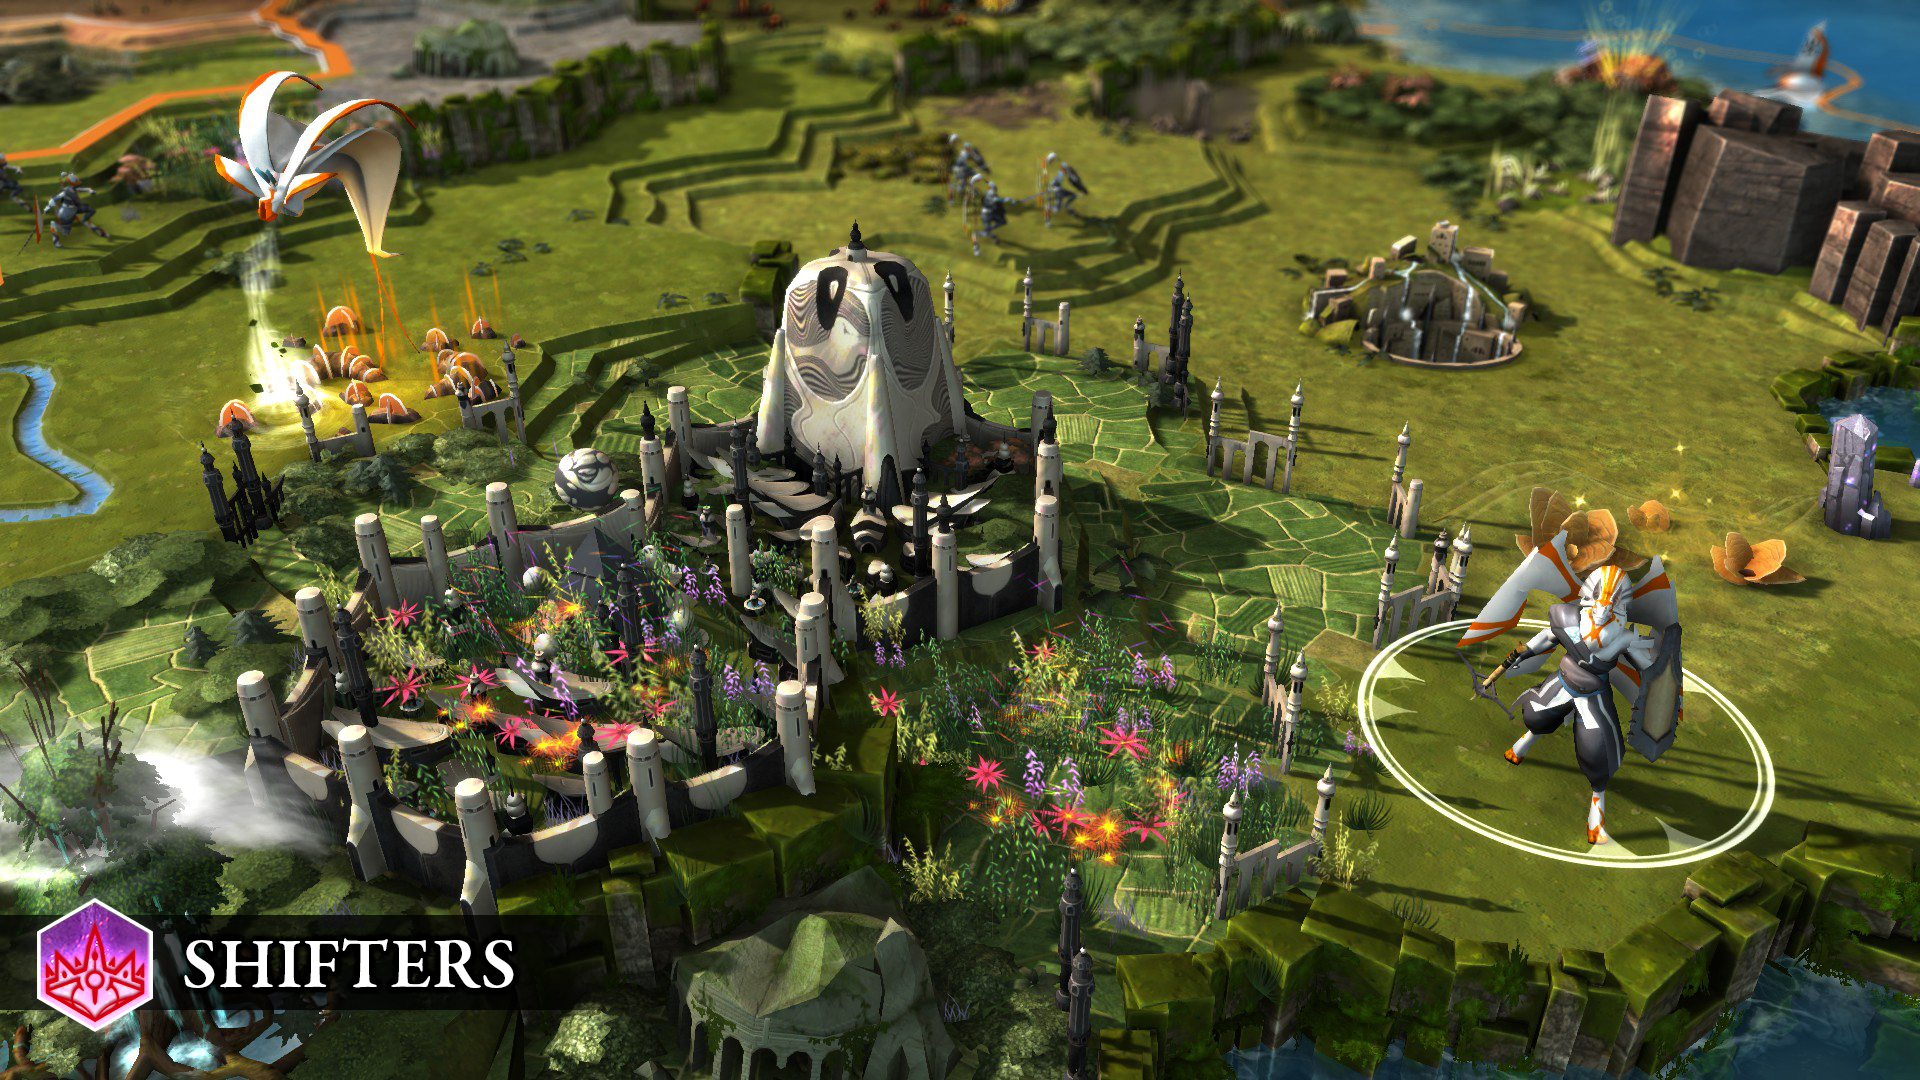 Endless Legends Shifters Features